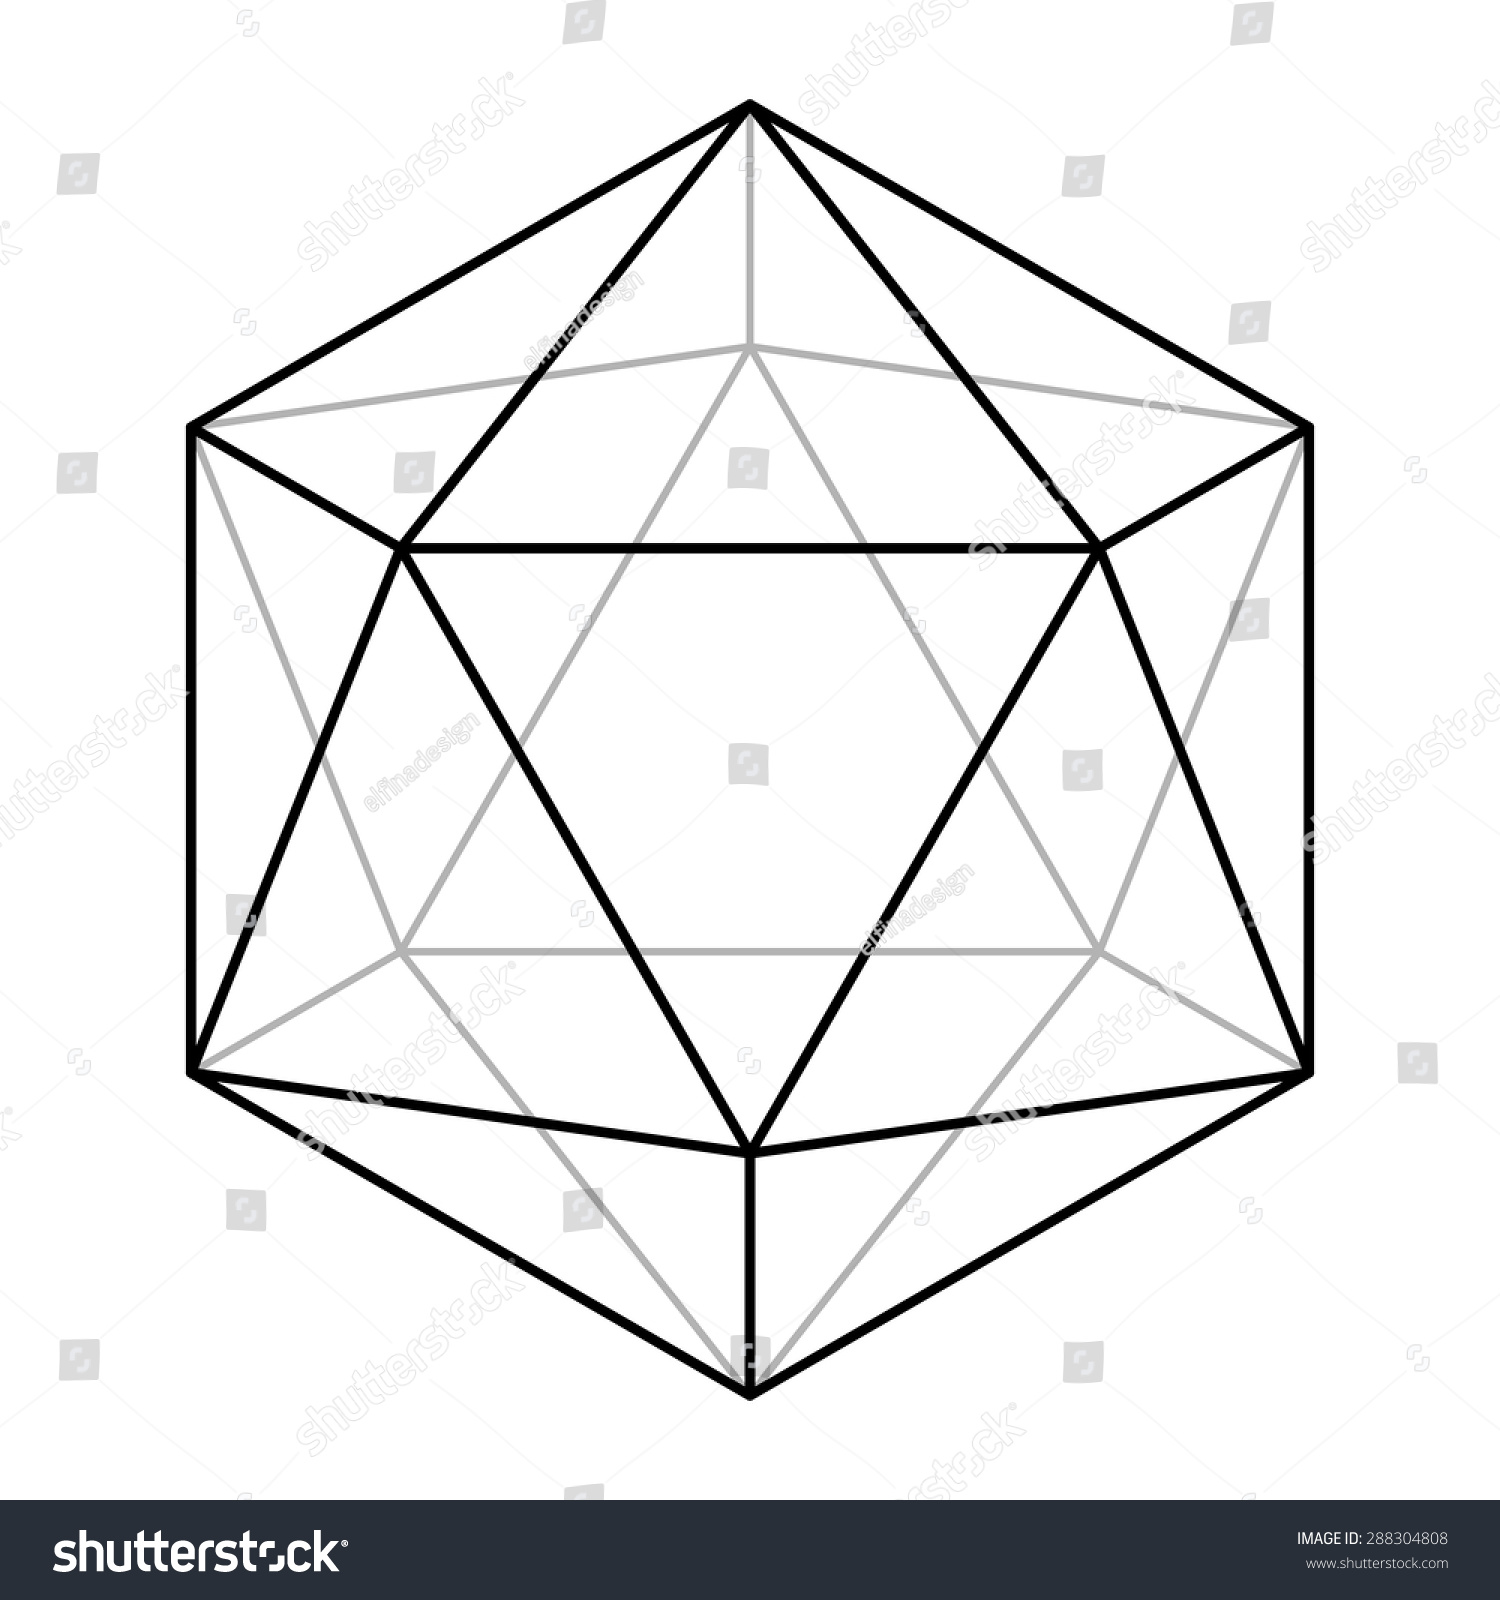 Icosahedron Line Drawing Sacred Geometry Platonic Solid Logo Design Vector Illustration